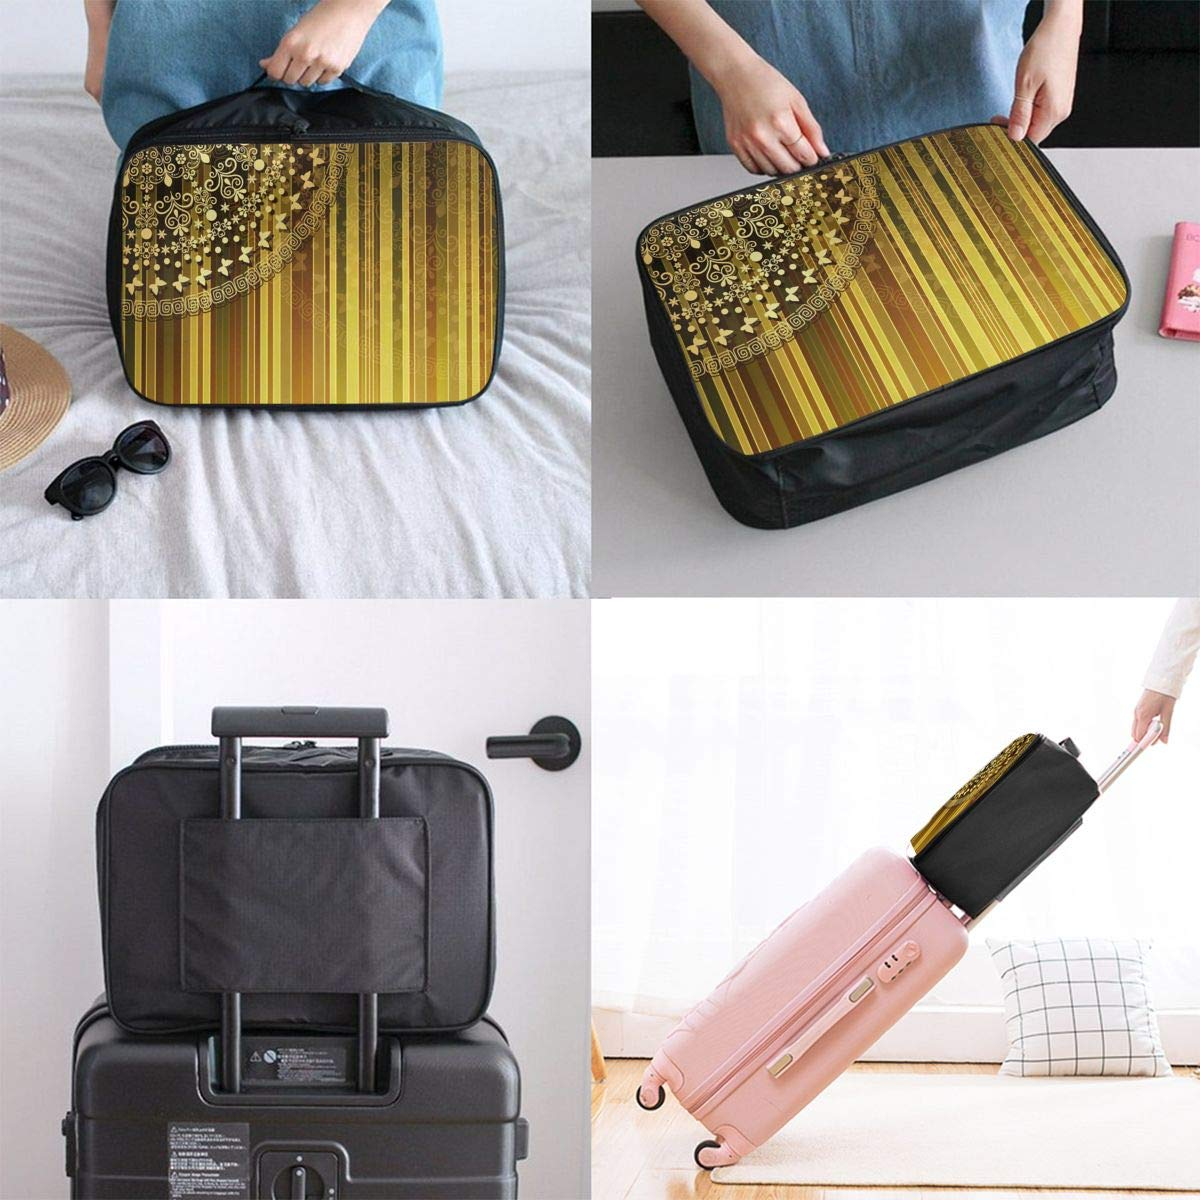 ADGAI Vertically Striped Pattern Canvas Travel Weekender Bag,Fashion Custom Lightweight Large Capacity Portable Luggage Bag,Suitcase Trolley Bag